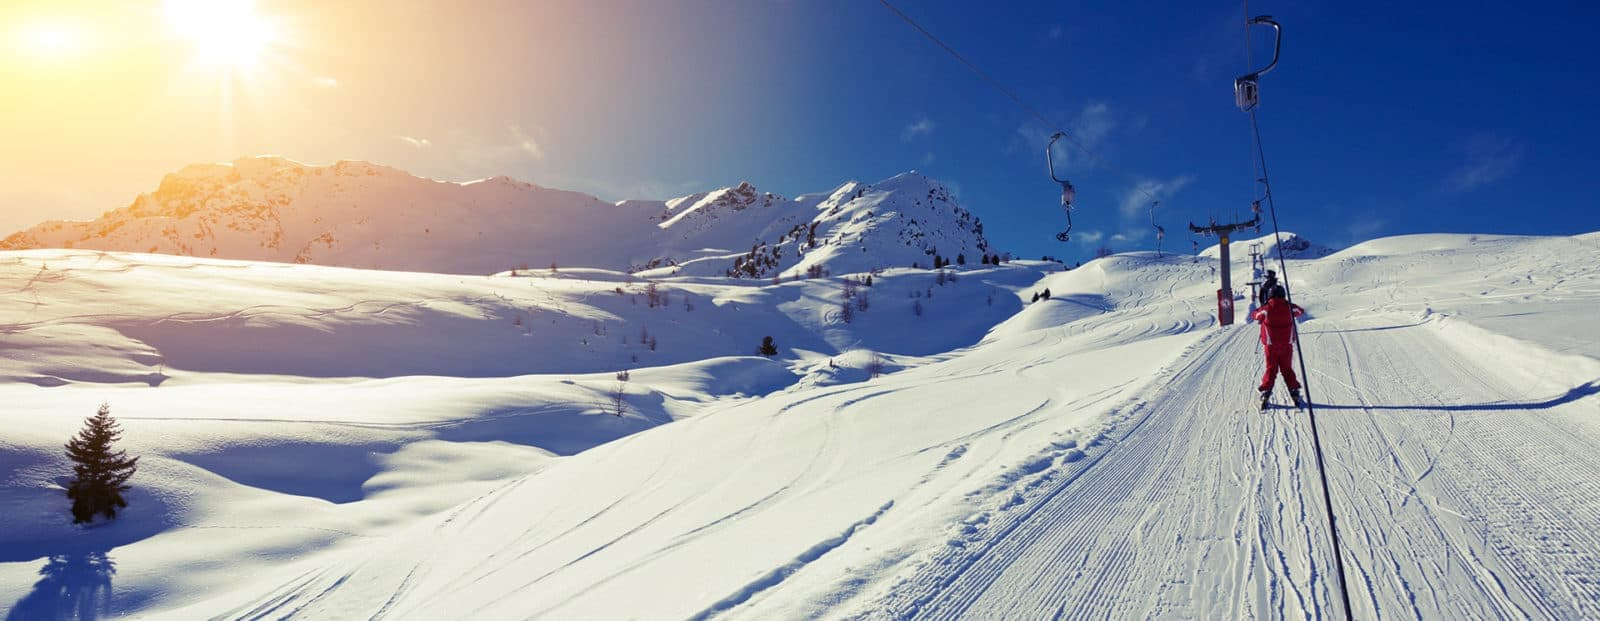 Prowinter Background Image Skier